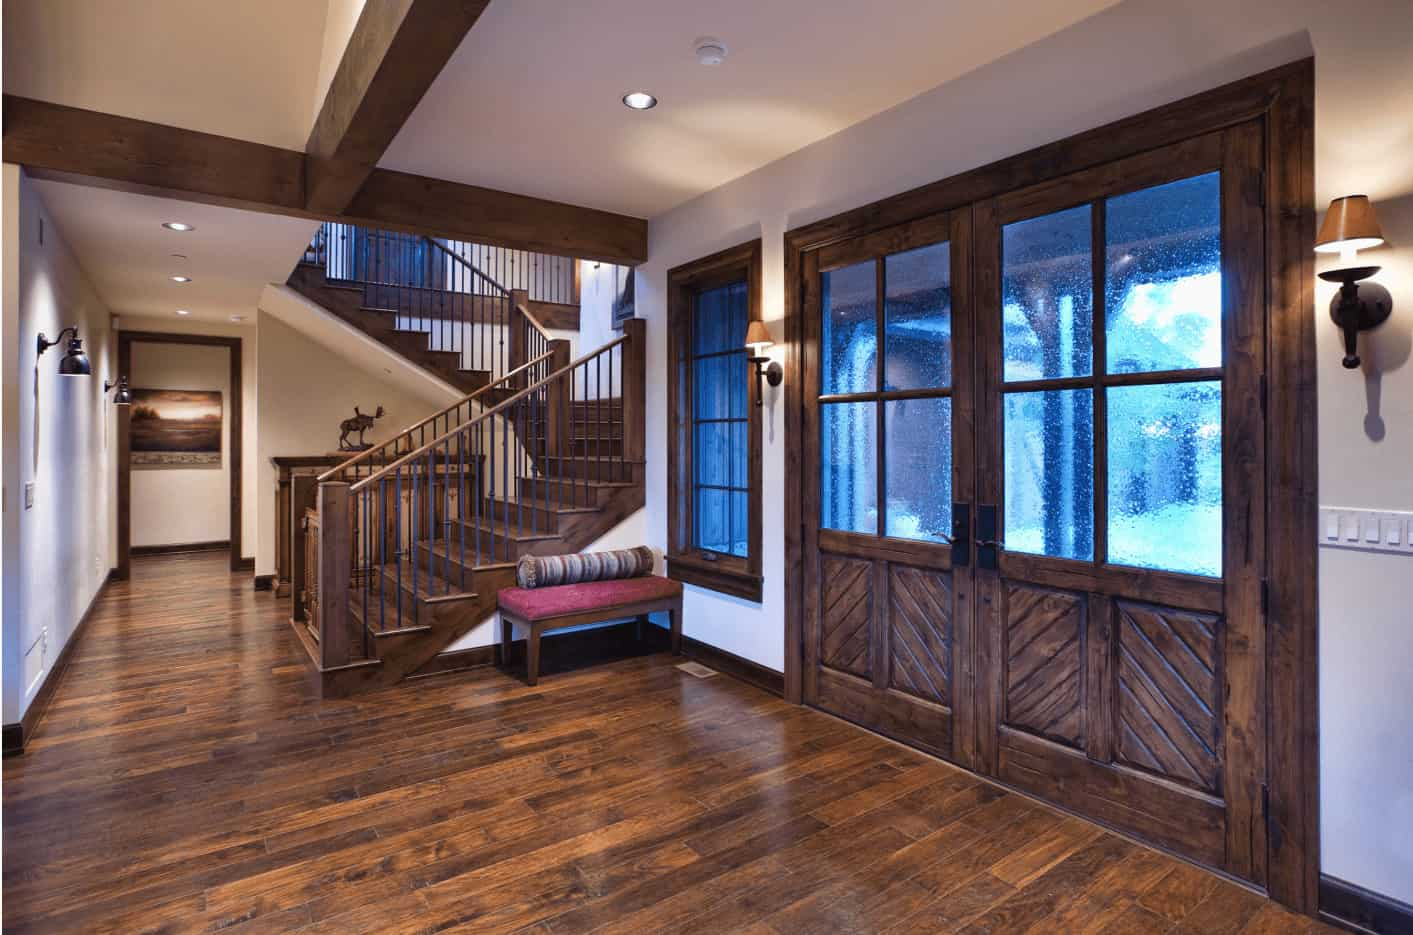 Traditional foyer with wood plank flooring and a wooden french door lighted by wall sconces. There's a red bench topped with a cylindrical pillow by the staircase.